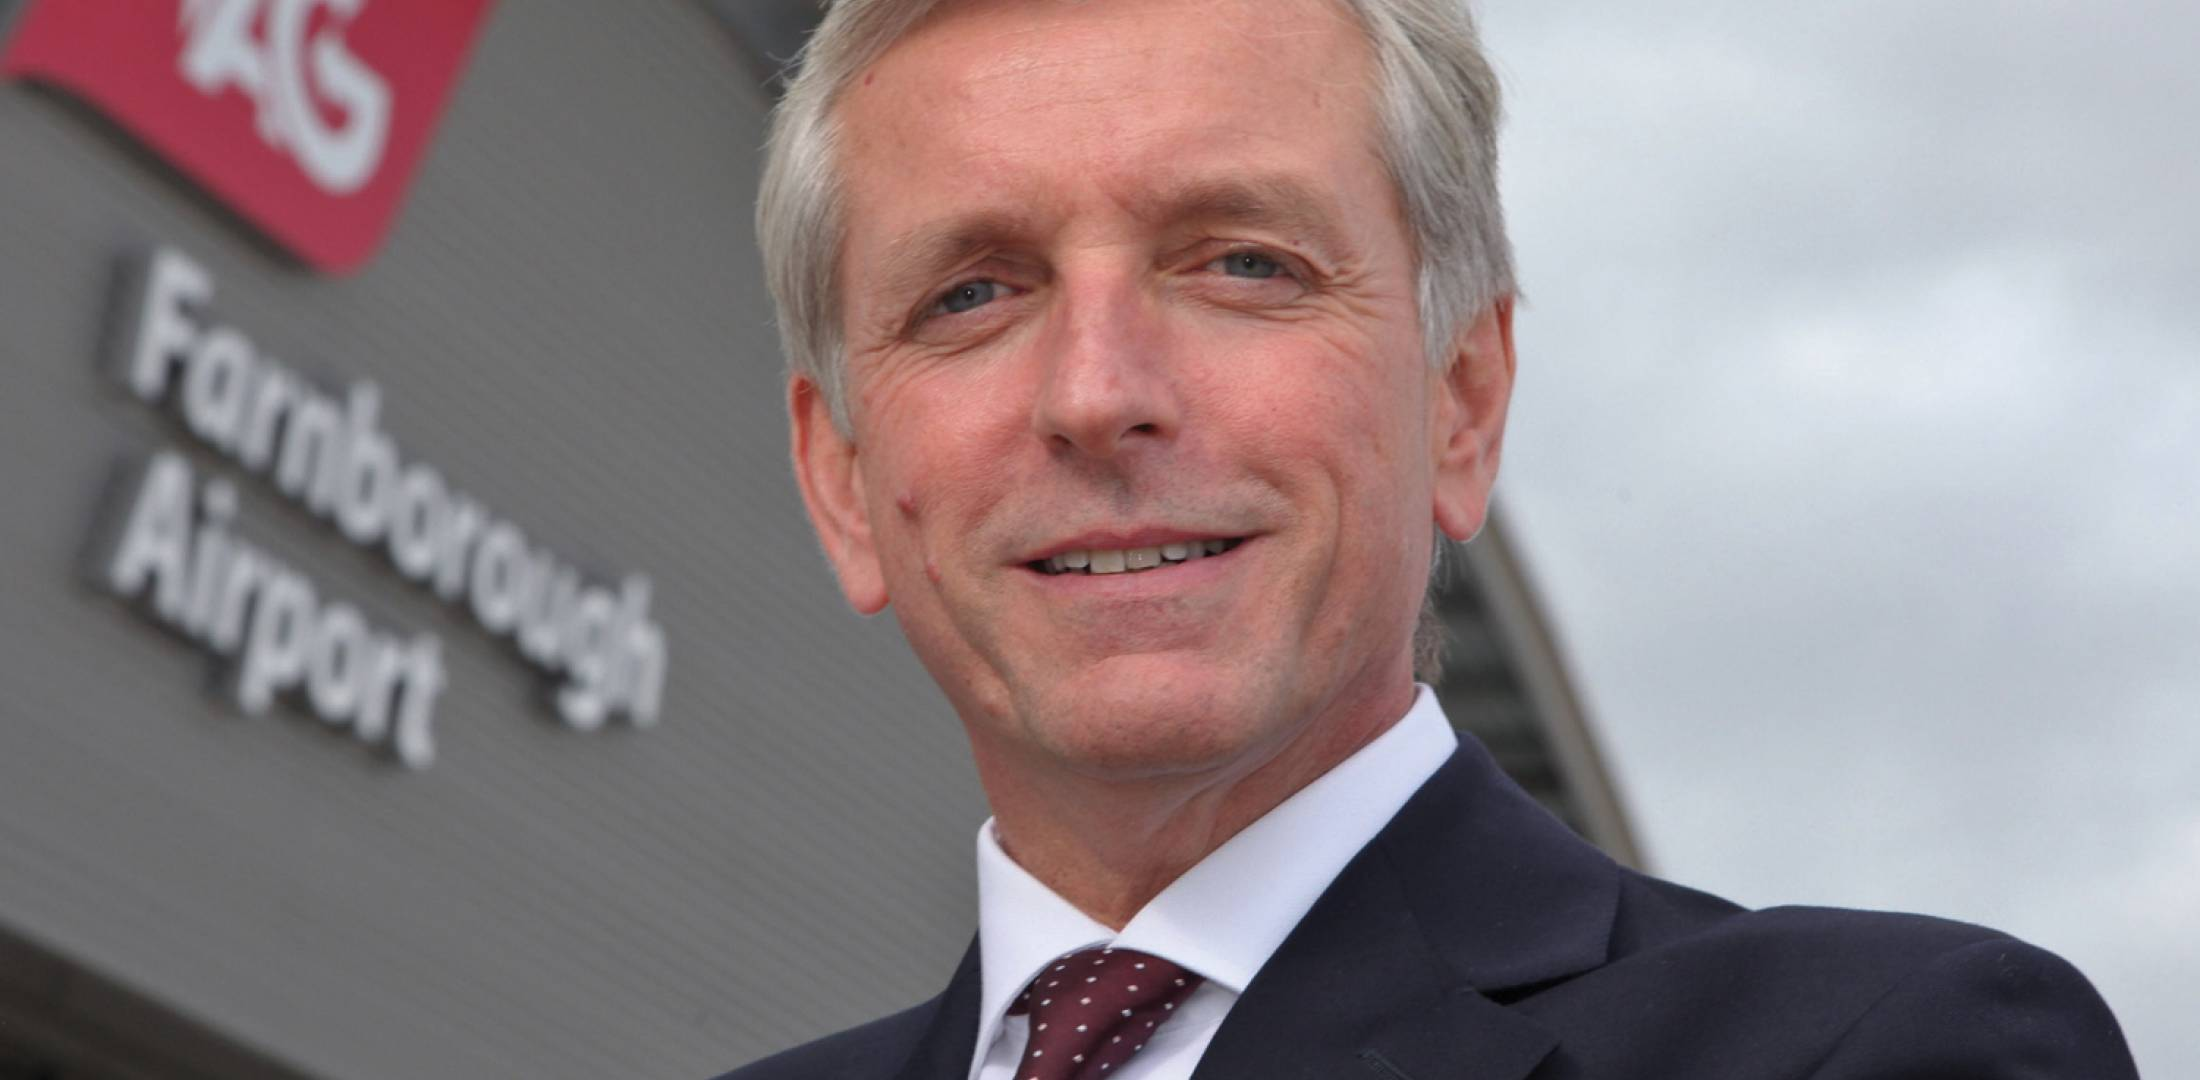 Brandon O'Reilly has been CEO of TAG Farnborough Airport since 2005, and has seen it become one of the world's leading dedicated bizav airport.